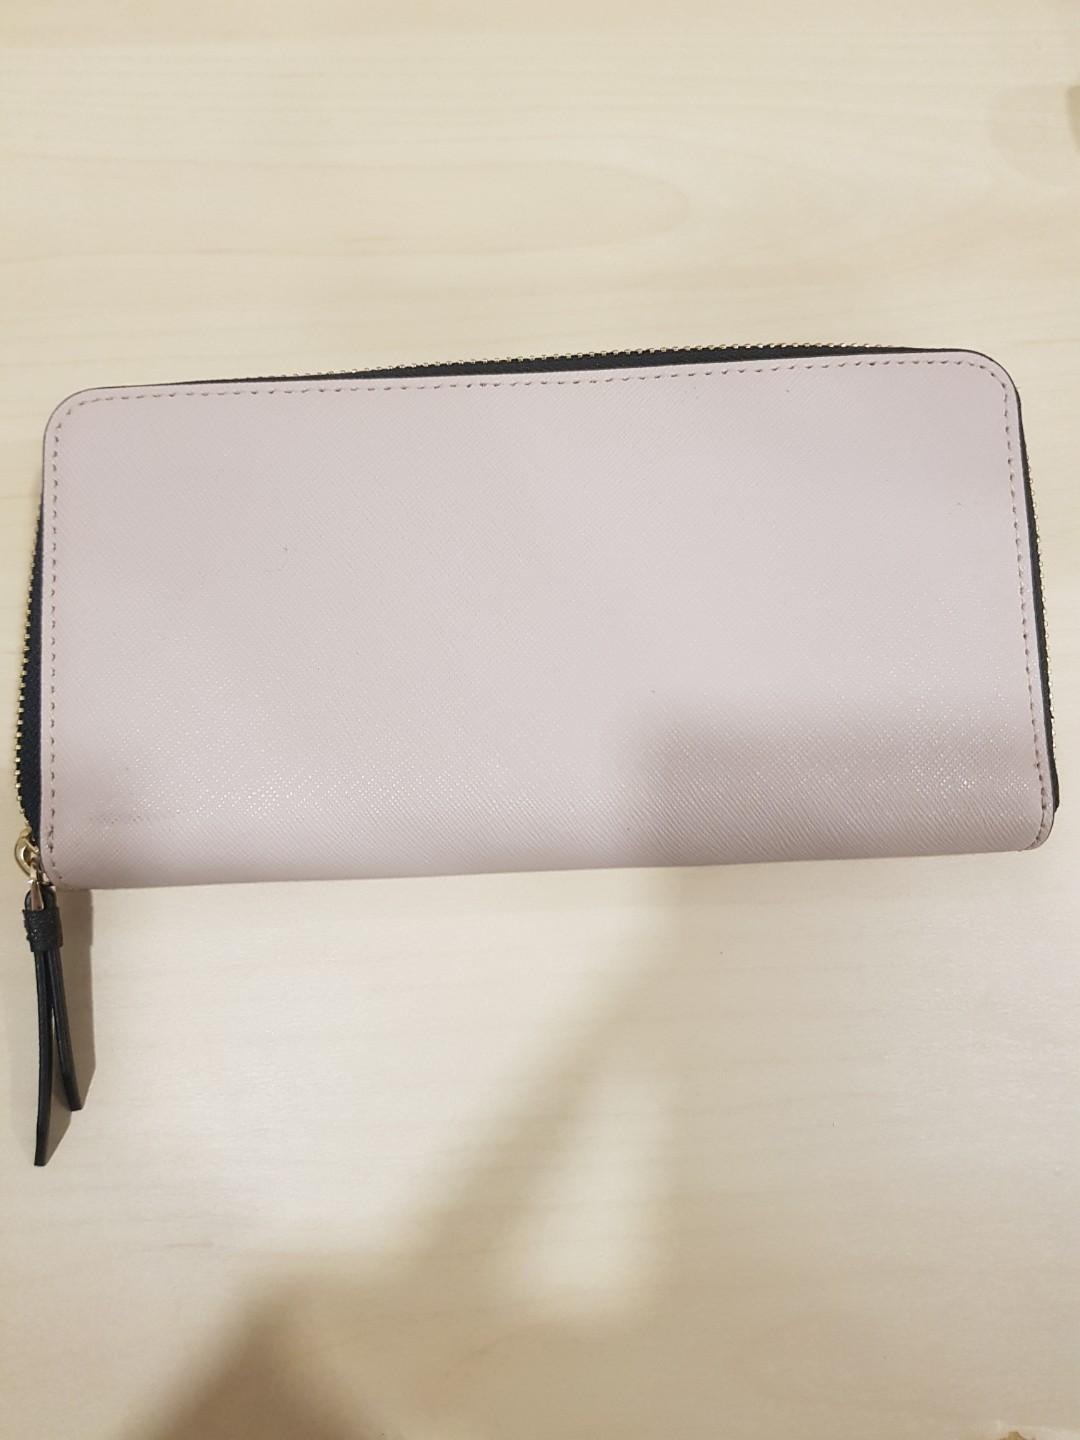 Brand New KATE SPADE Large Wallet